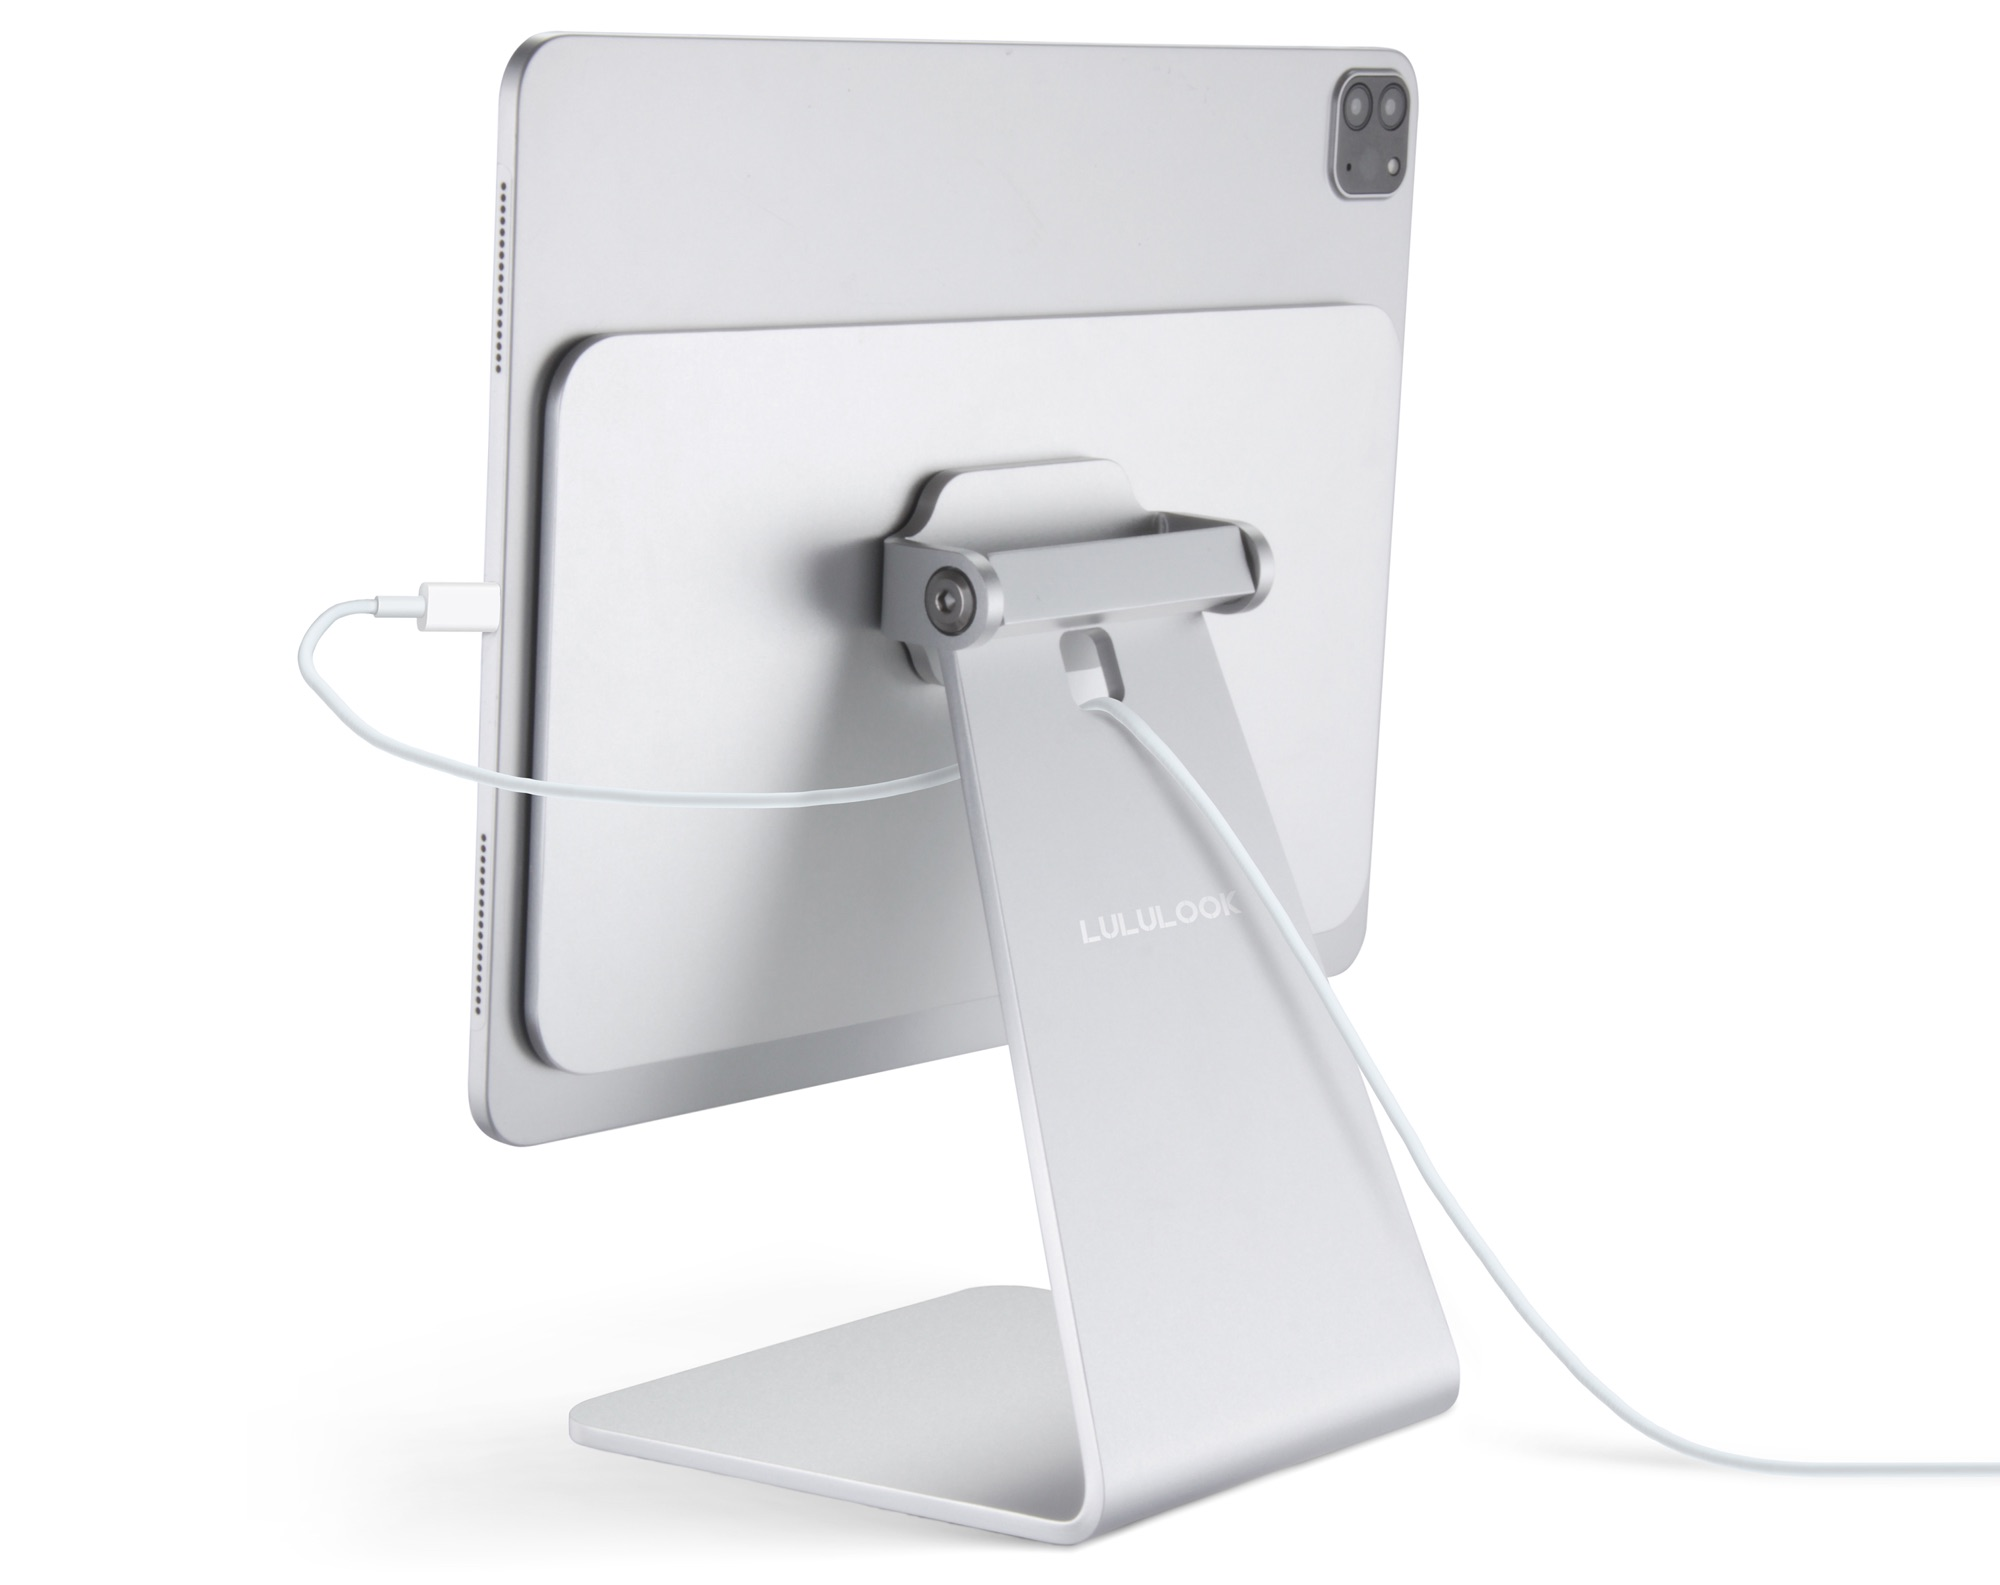 MacRumors Giveaway: Win a Magnetic iPad Stand From Lululook